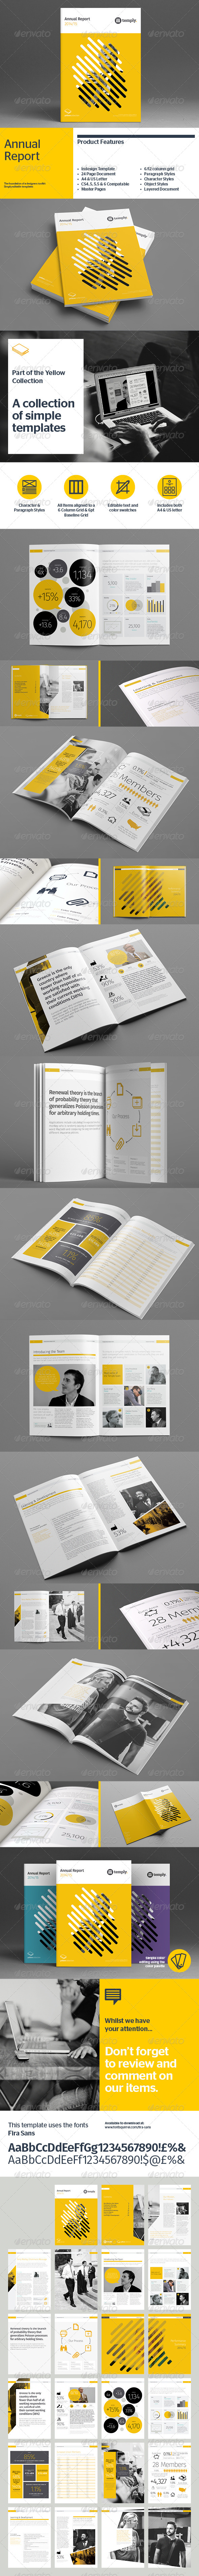 GraphicRiver Annual Report Template 8536189